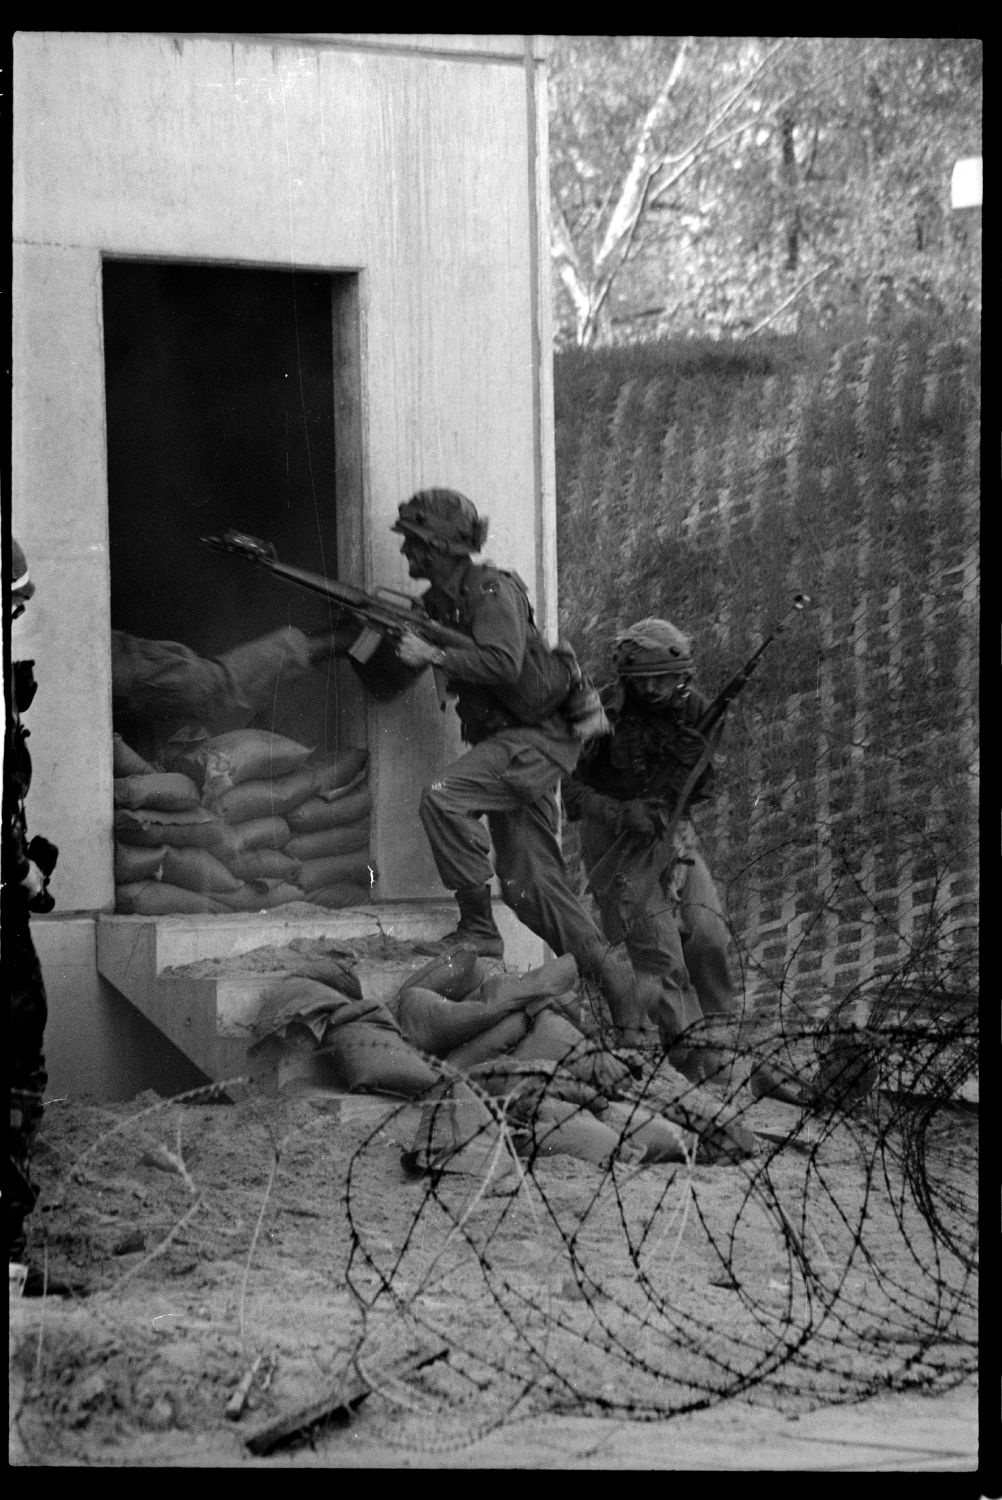 s/w-Fotografie: ARTEP Truppenübung der U.S. Army Berlin Brigade in Ruhleben Fighting City in Berlin-Spandau (AlliiertenMuseum/U.S. Army Photograph Public Domain Mark)